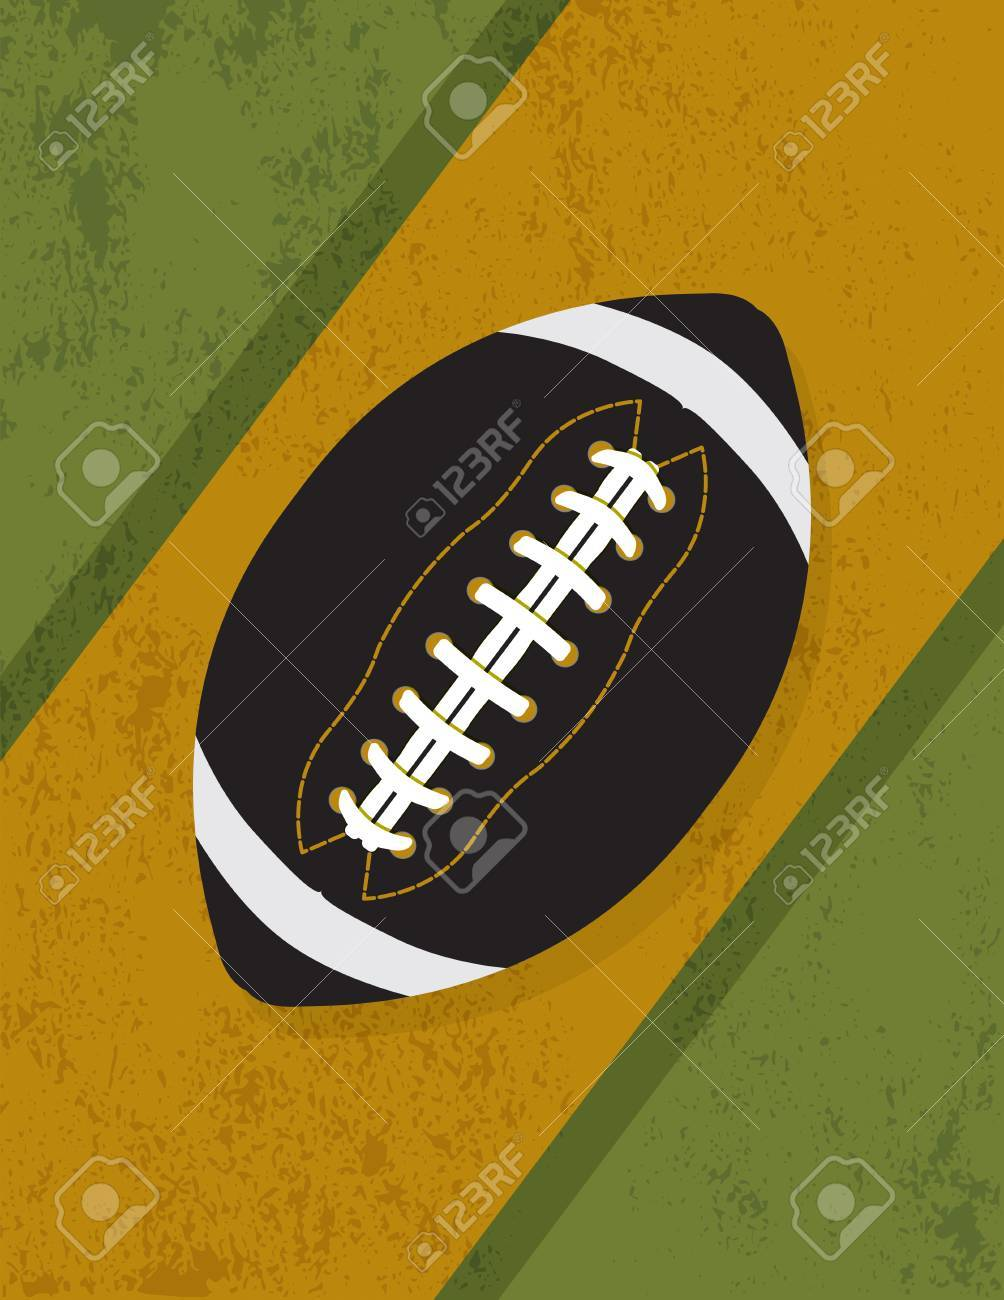 An illustration of a football icon on a grunge vintage background. Vector EPS 10 available. EPS contains transparencies. - 49538139